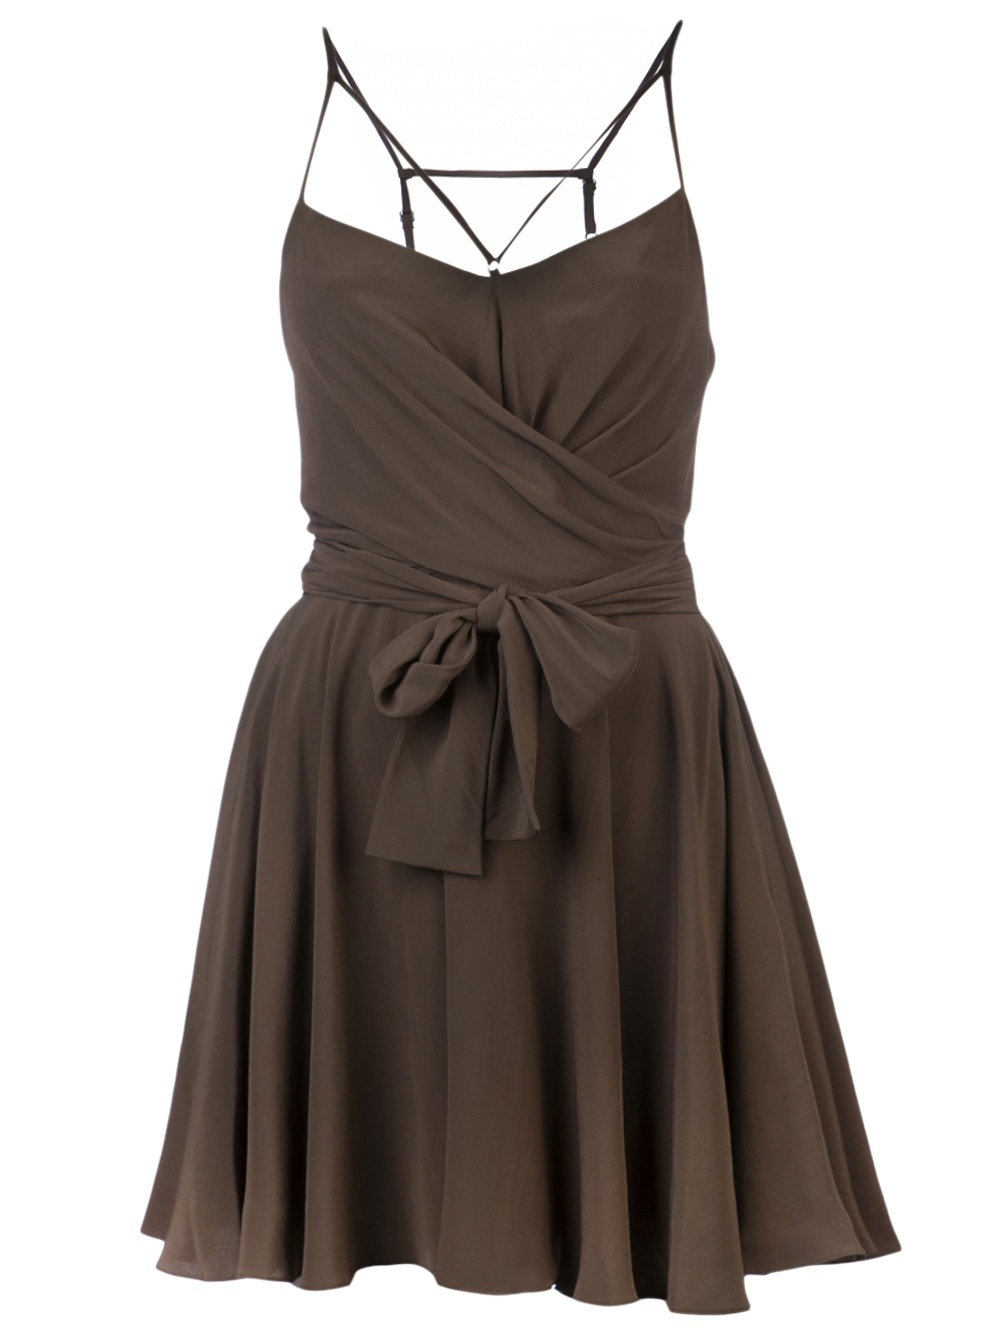 ingmecanica.ml offers Wrap Dress cheap on sale with discount prices in Women's Dresses, so you can shop from a huge selection of Wrap Dress, FREE Shipping available worldwide.